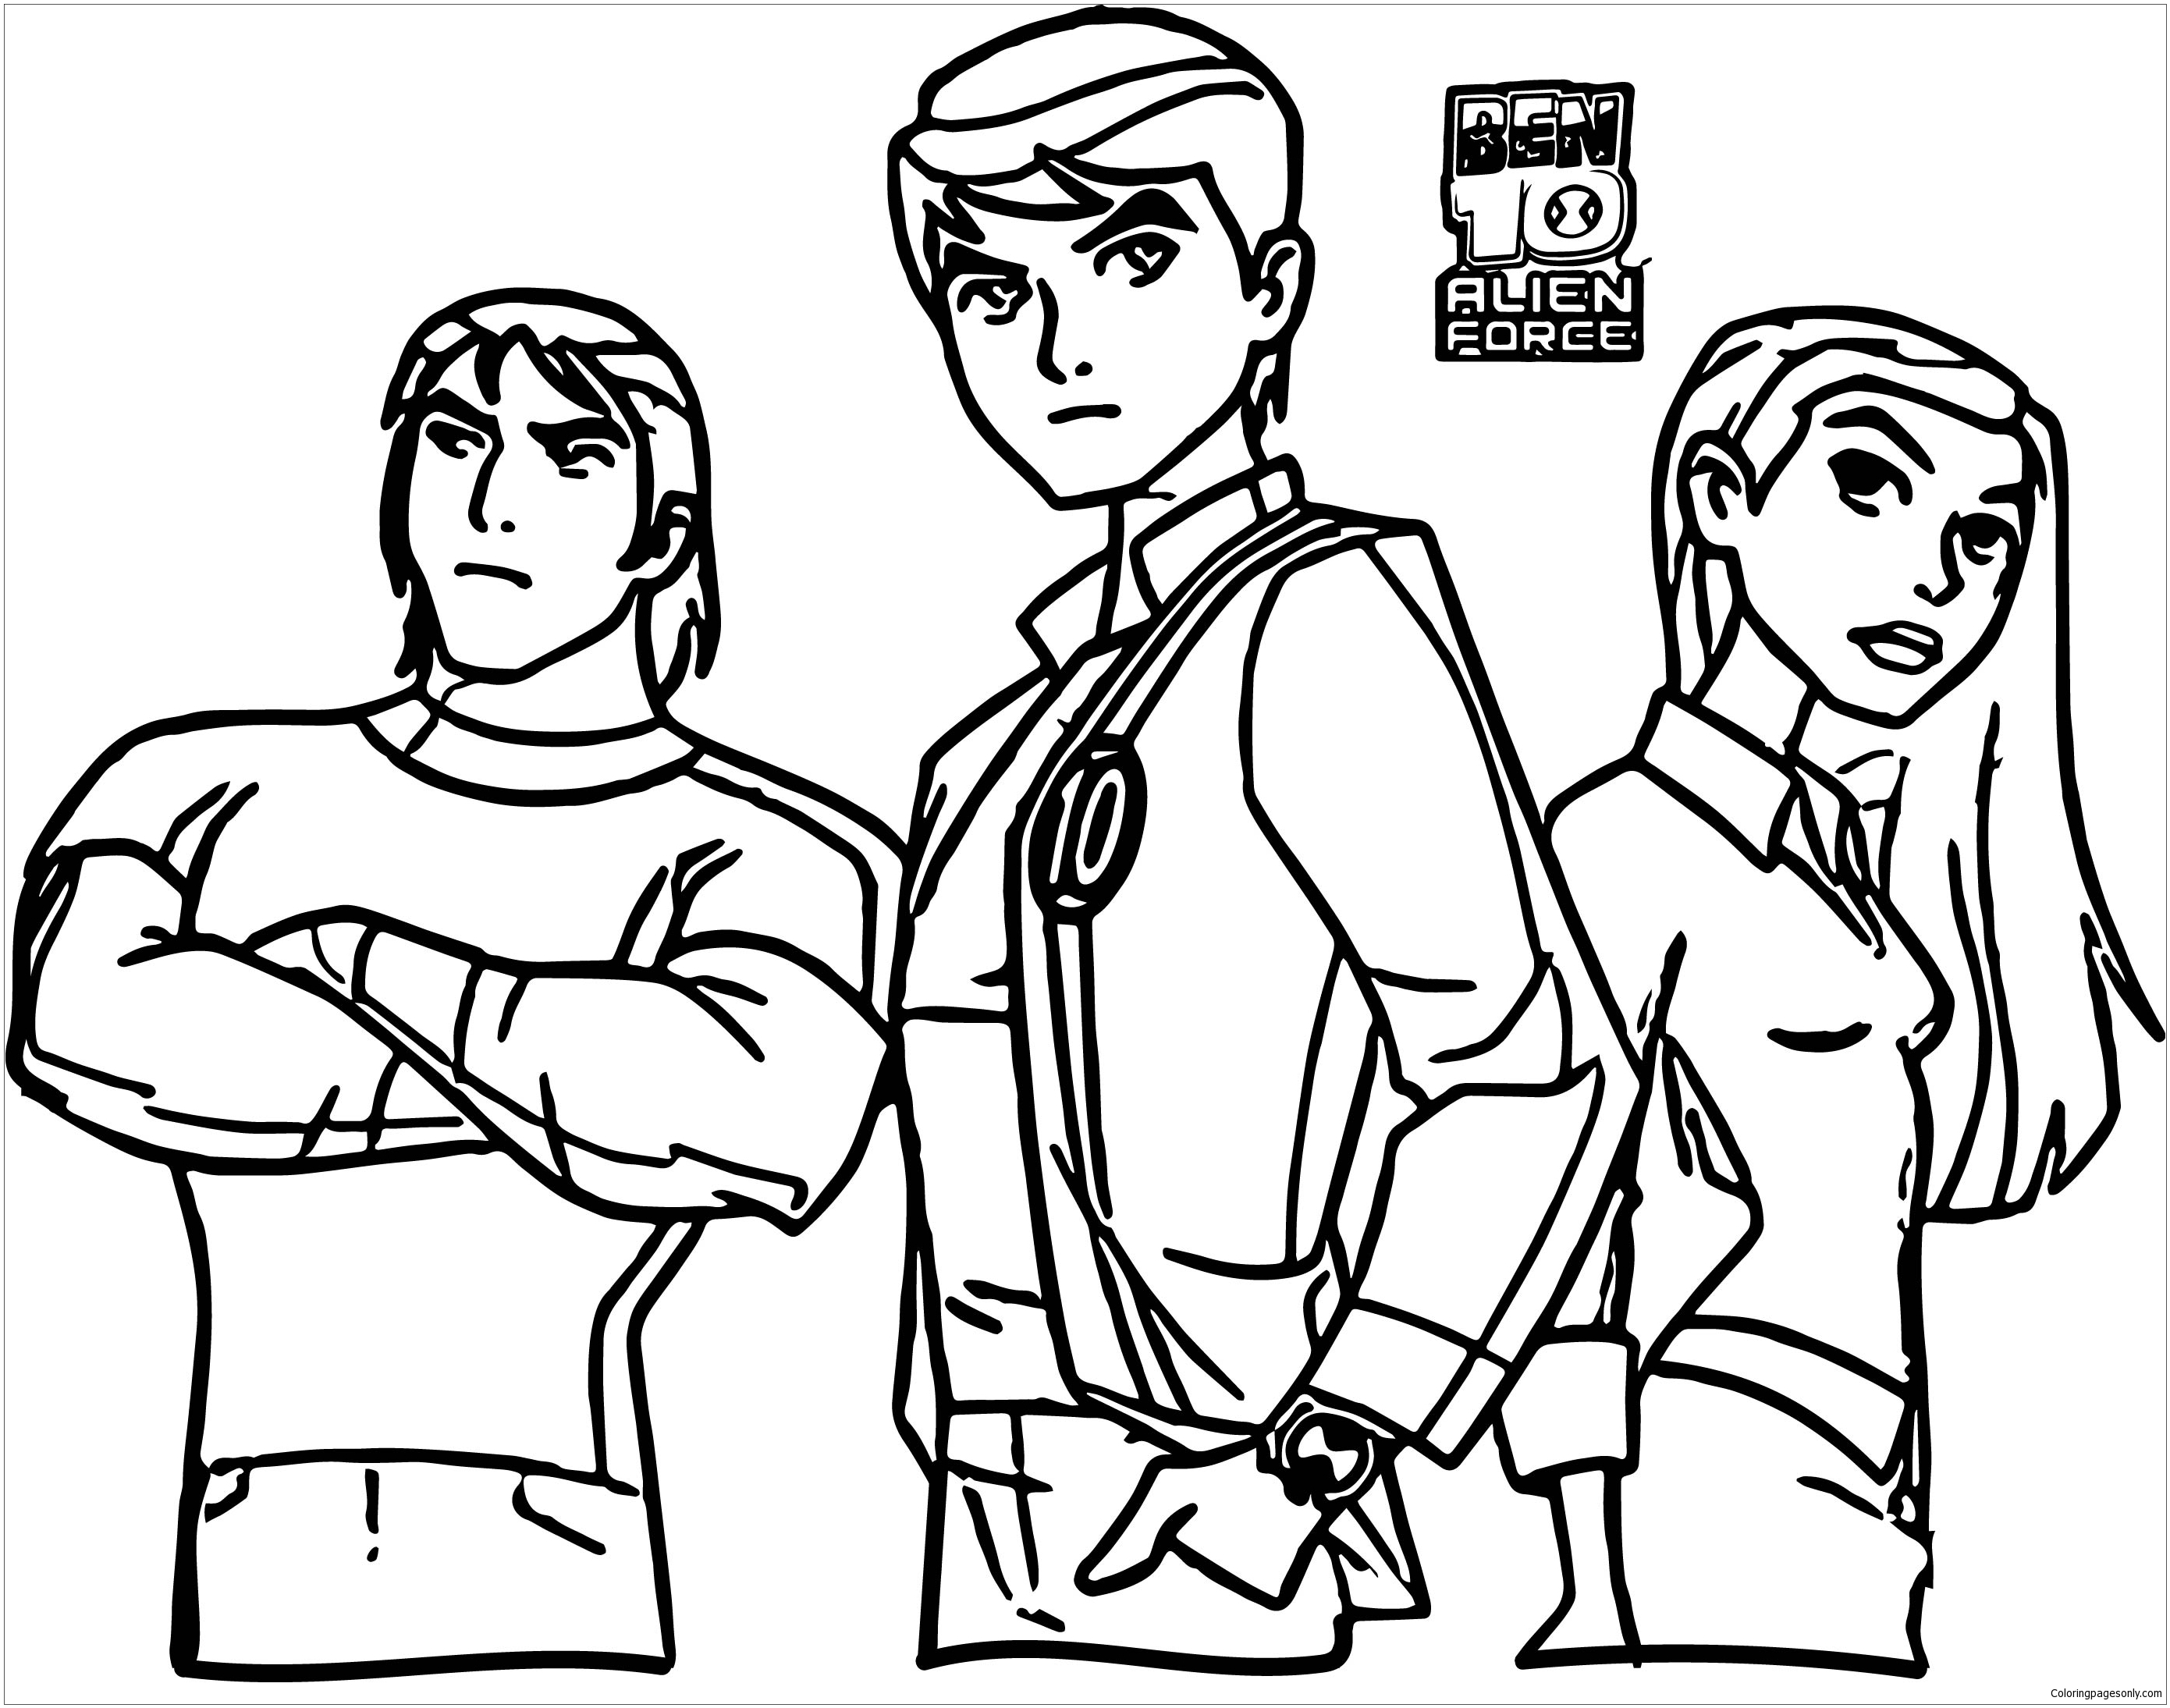 Ben 10 Alien Force Products Coloring